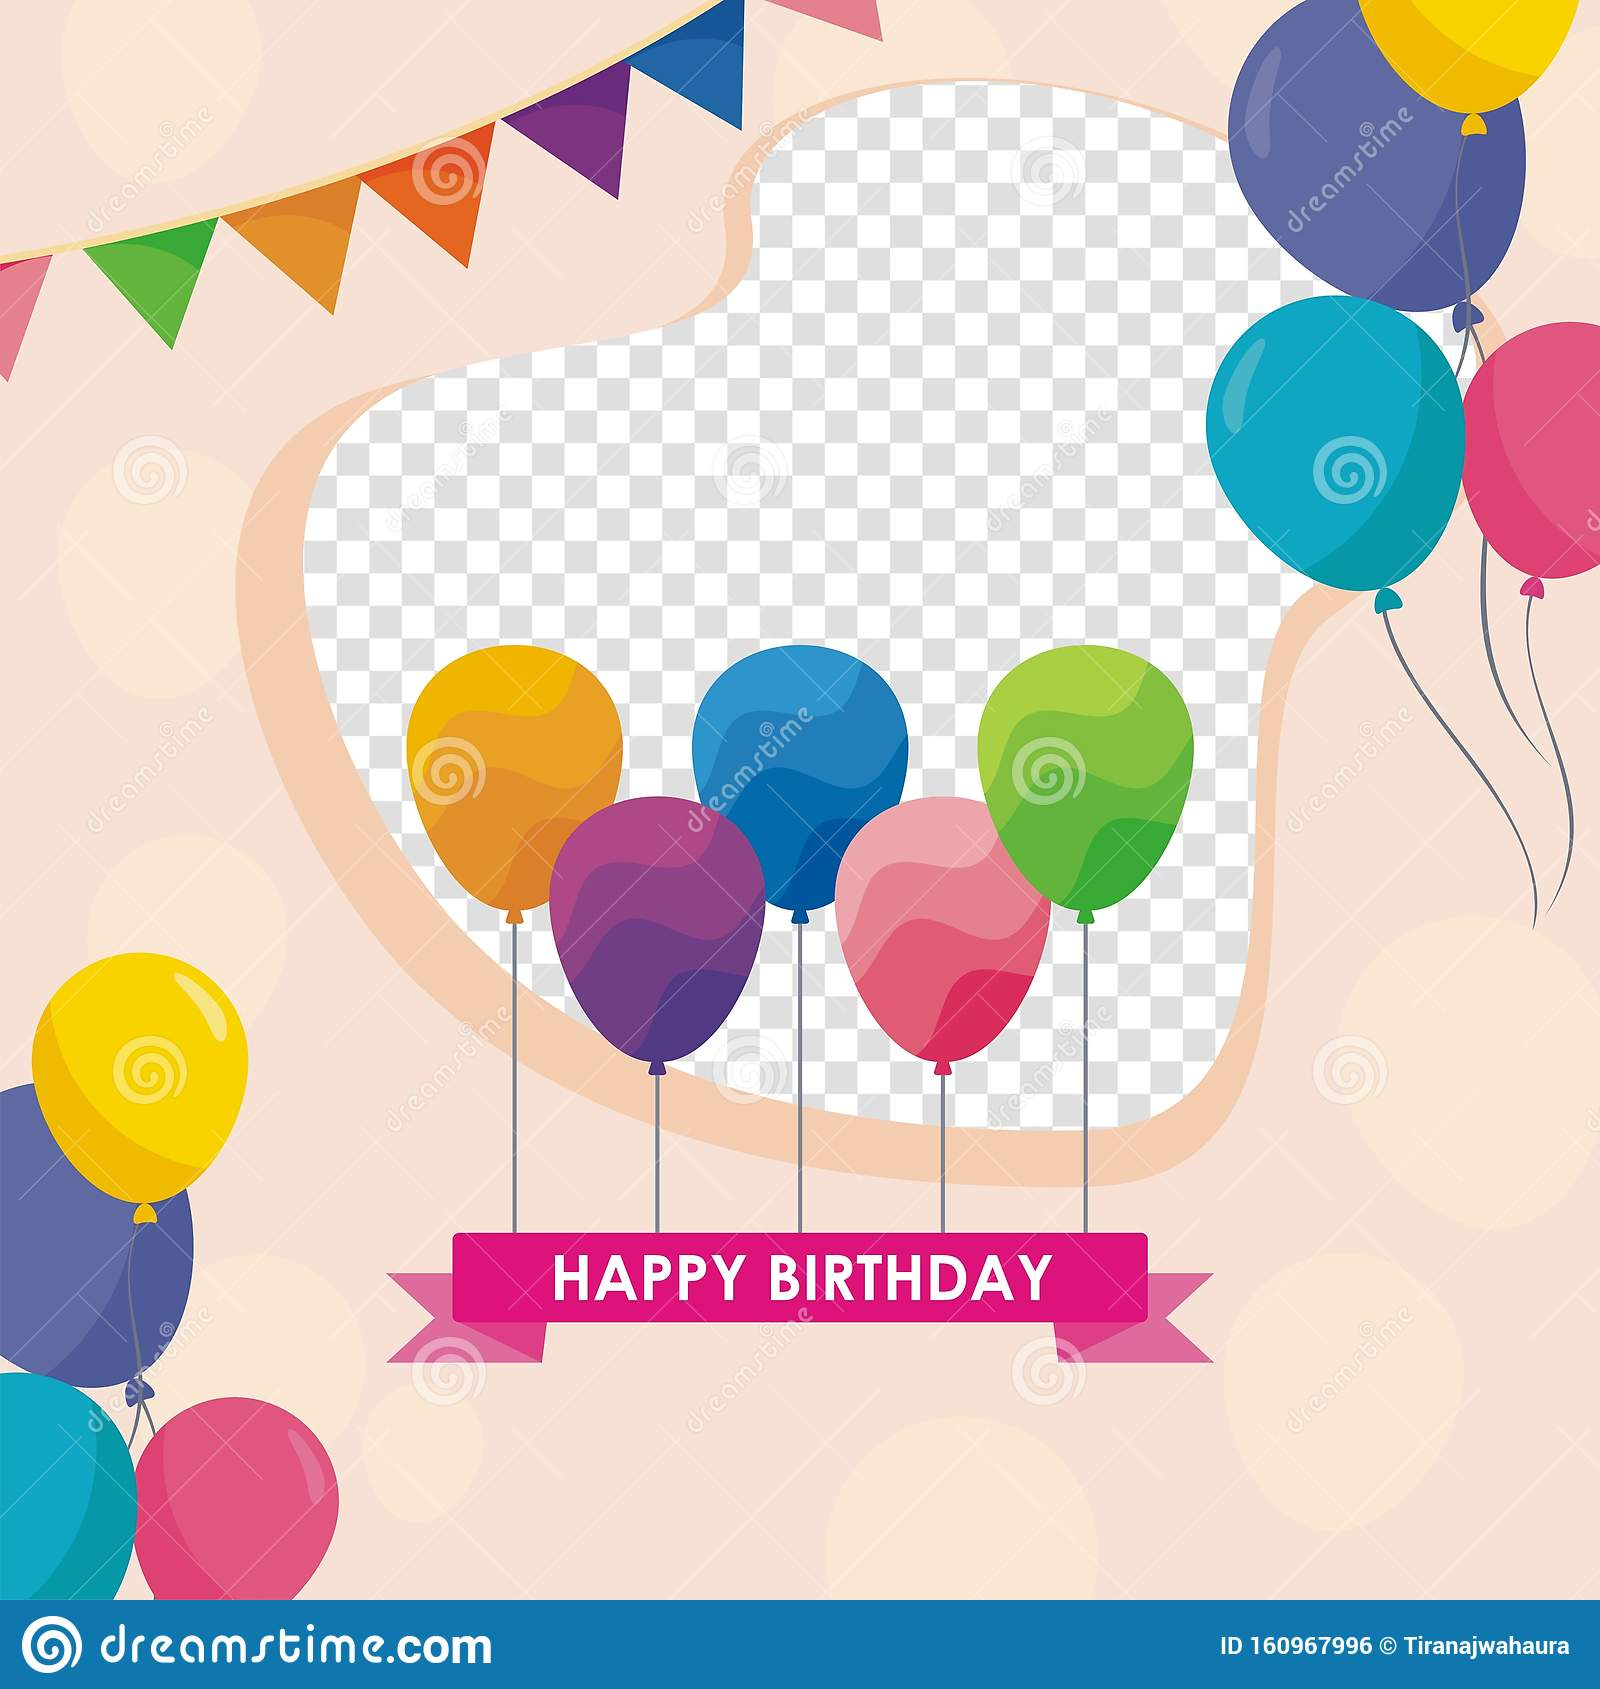 Happy Birthday Card Template Design With Trendy And Cute Design